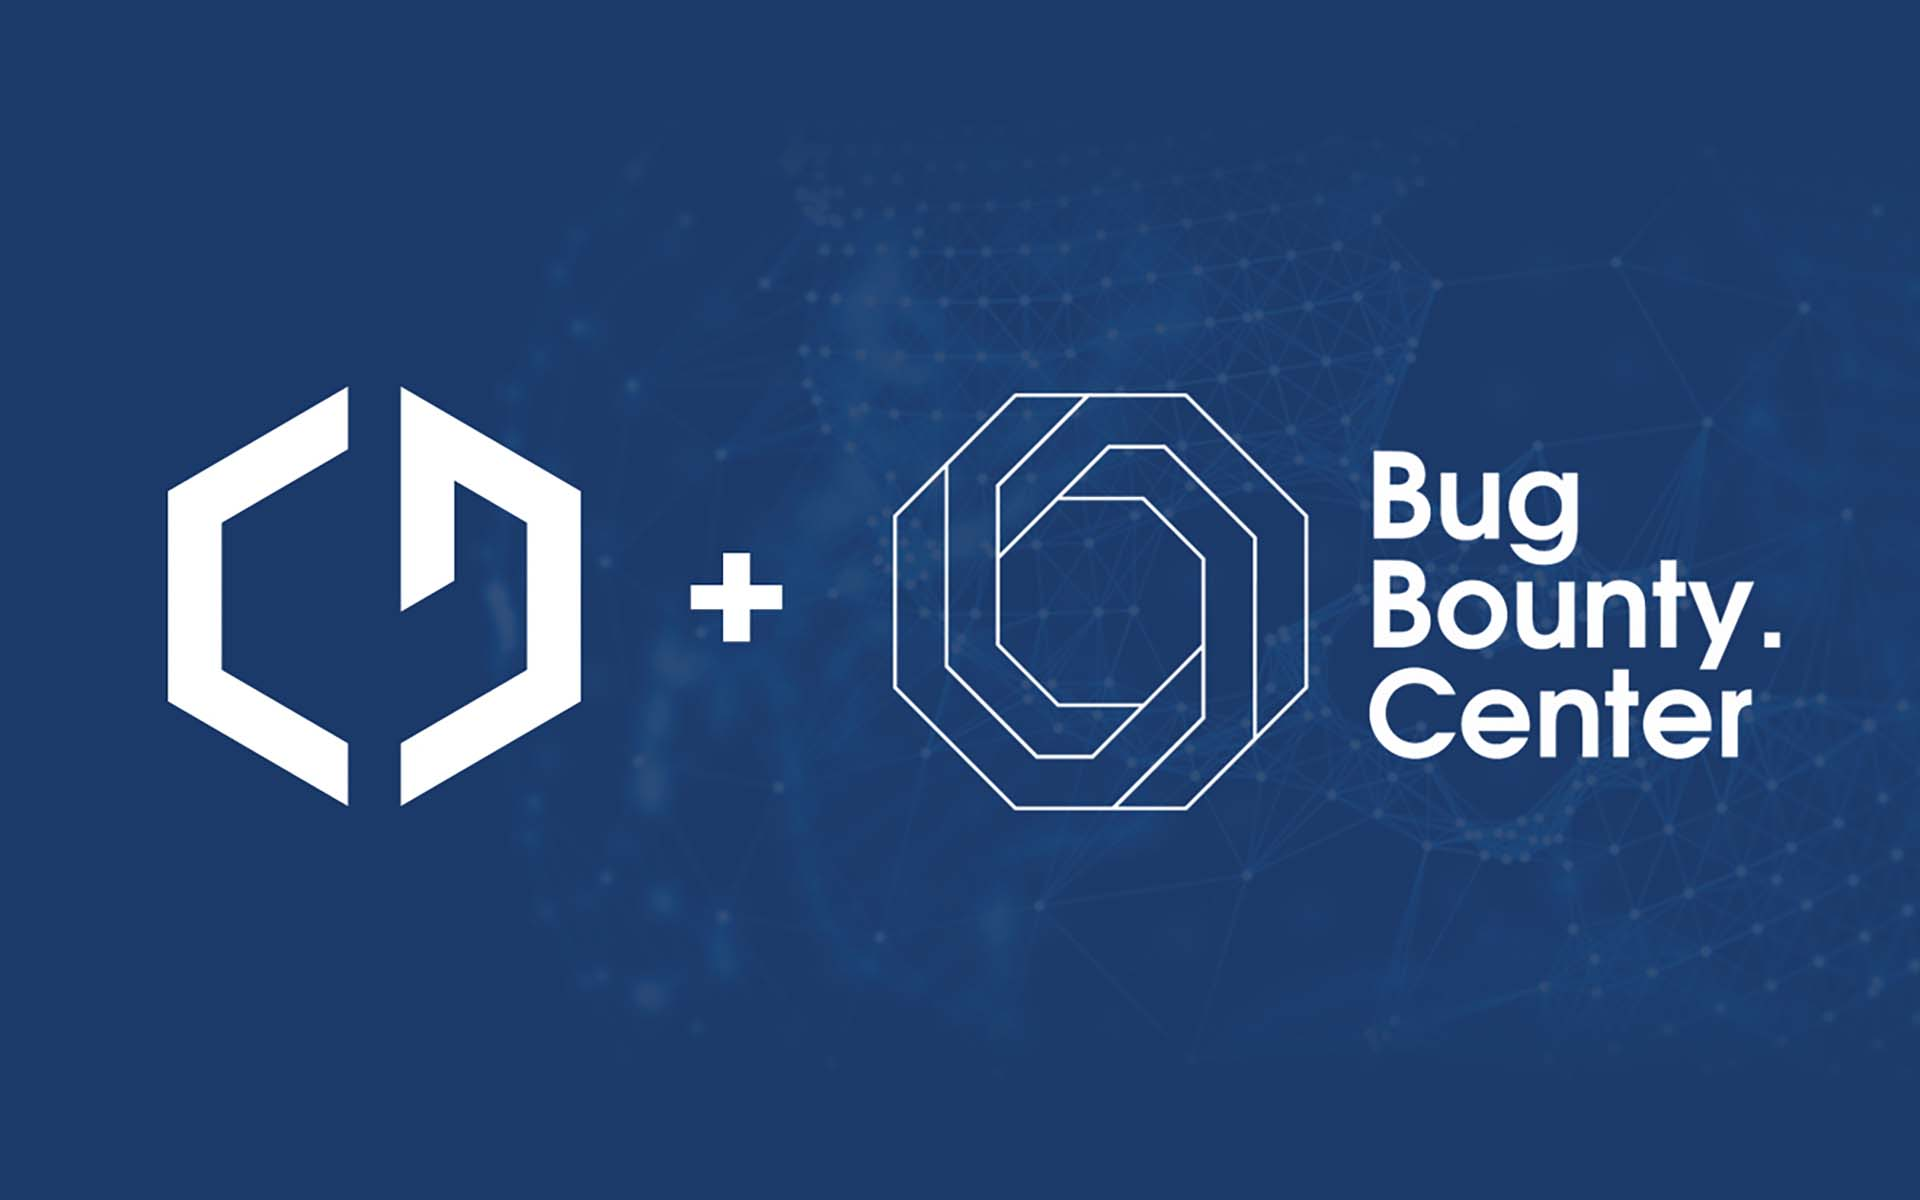 Confideal Announces New Partnership with BugBounty.Center